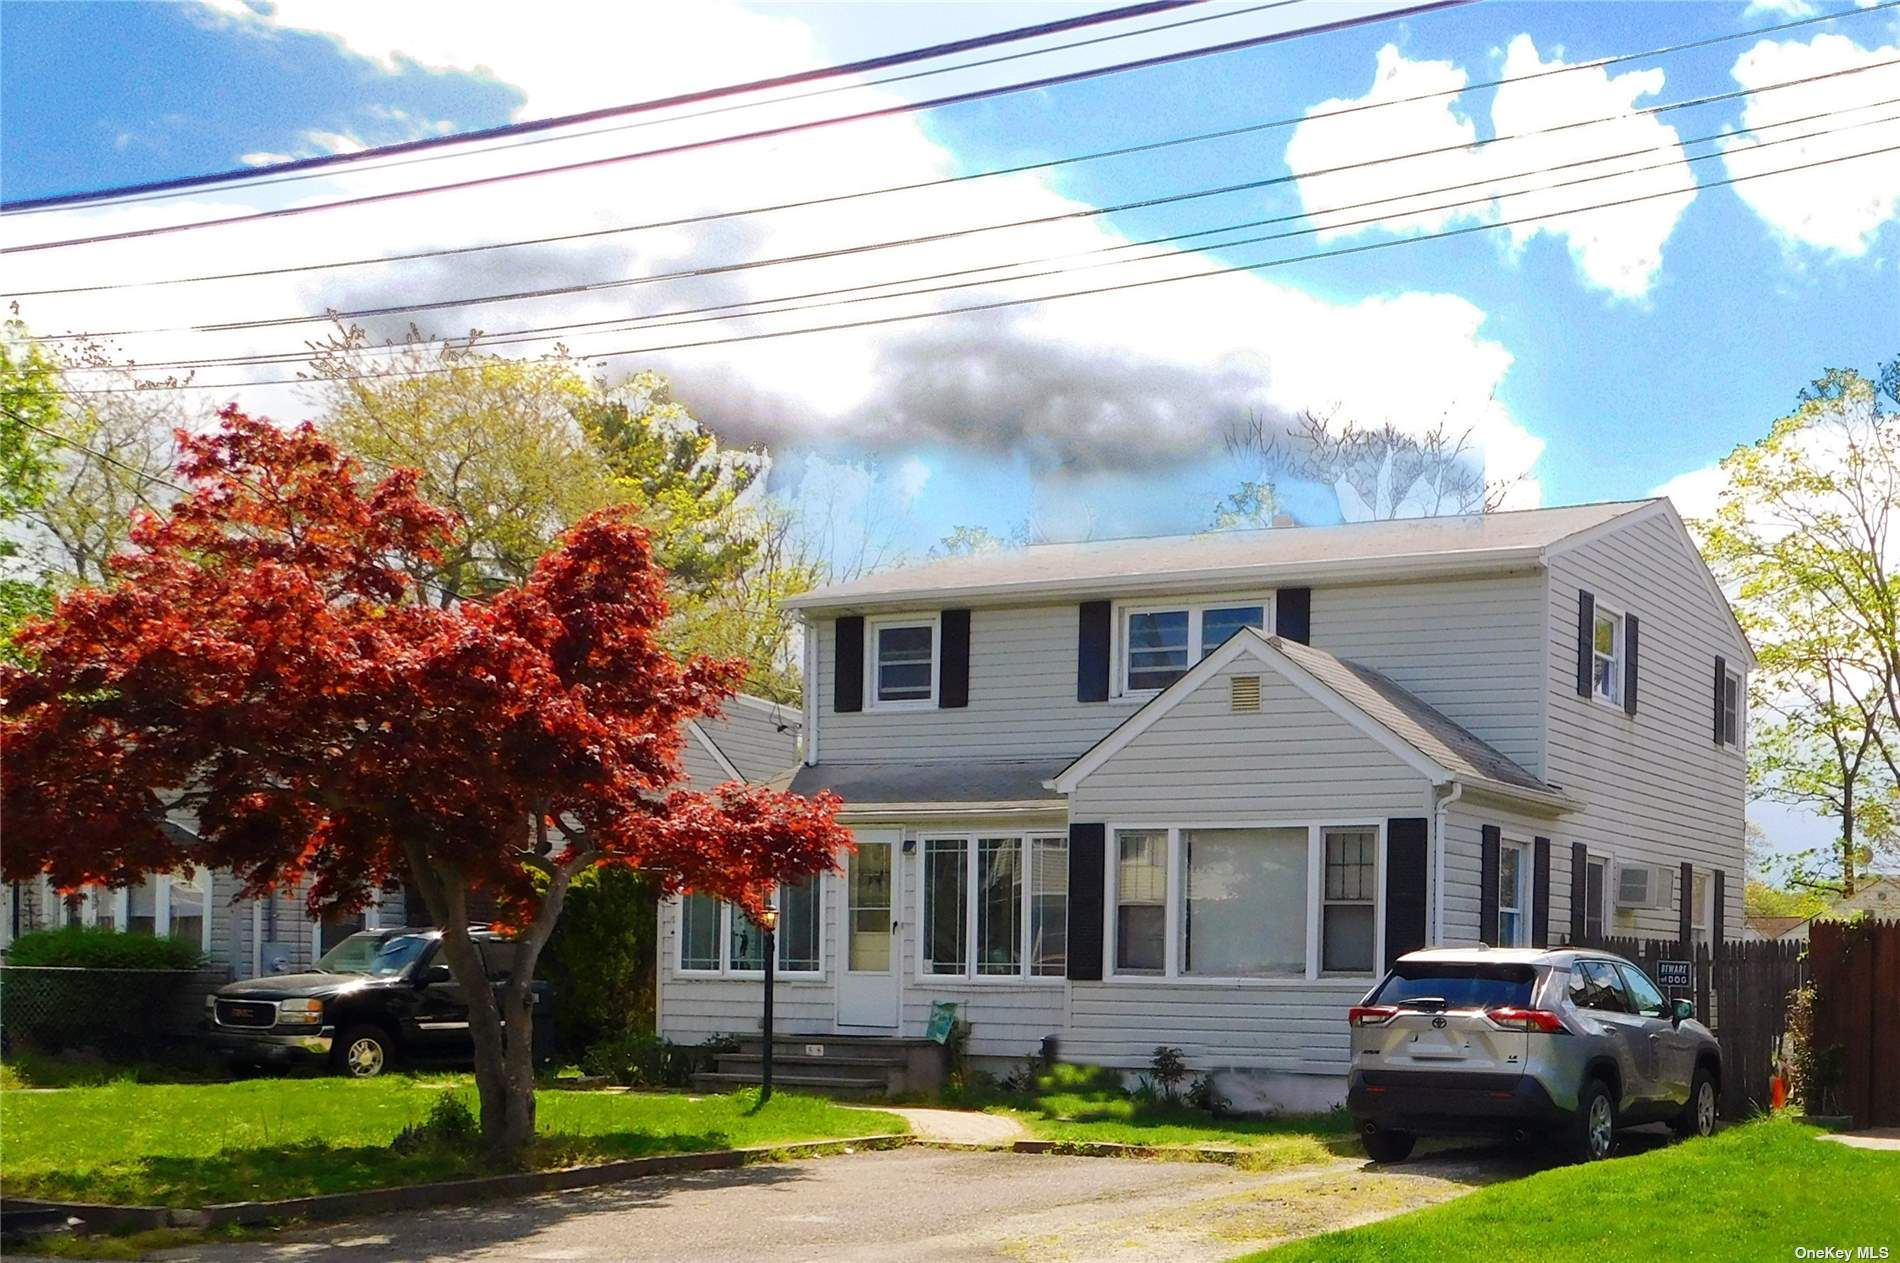 58 Daisy Street, Patchogue, NY 11772 - MLS#: 3309414